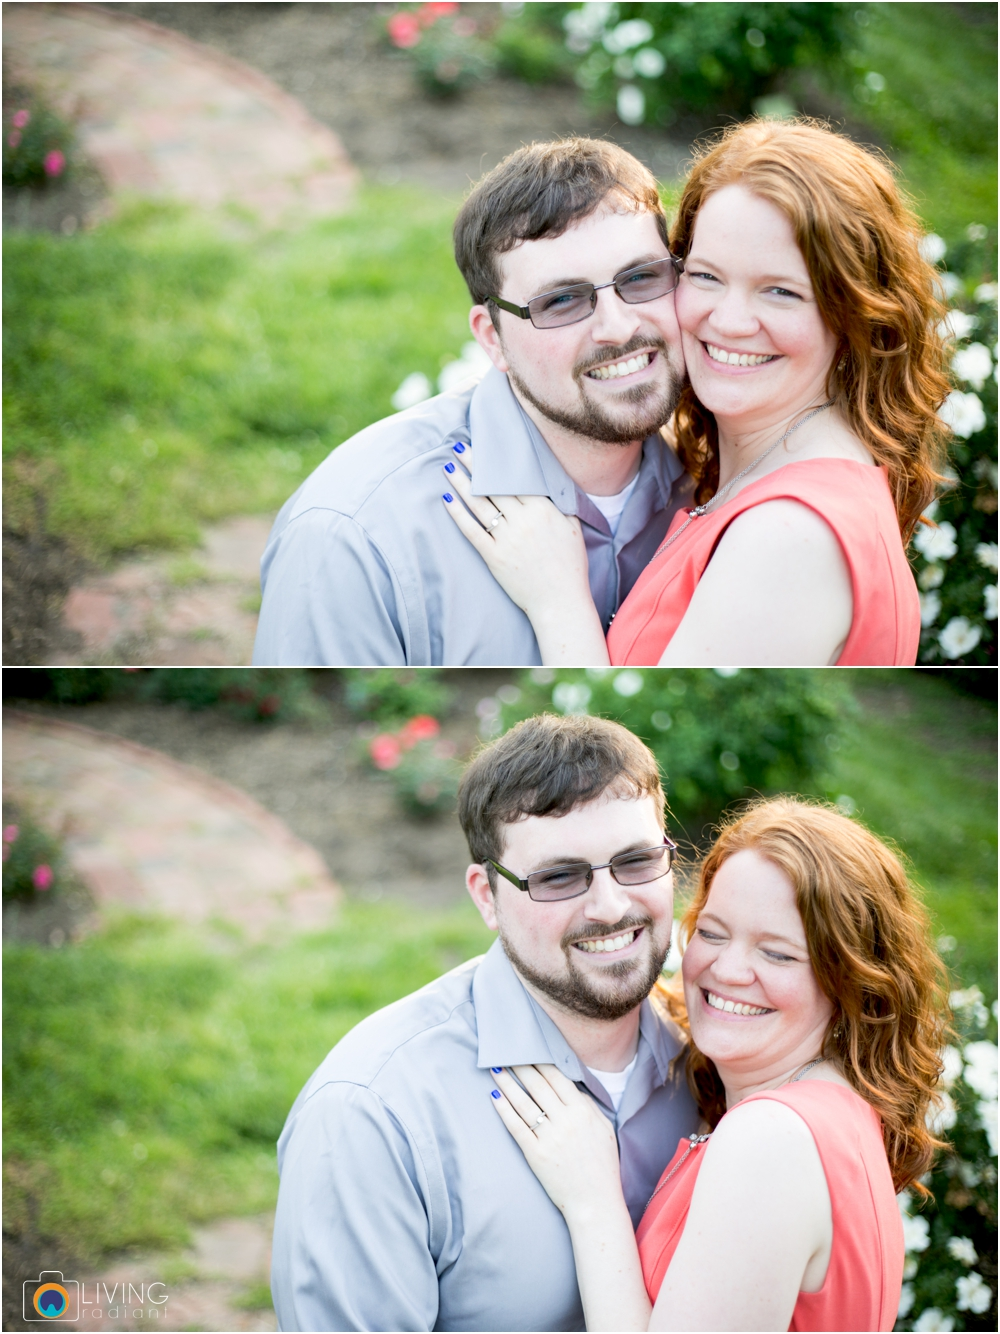 miriam-michael-engaged-clyburn-arboretum-engagement-session-baltimore-outdoor-flowers-living-radiant-photography-maggie-patrick-nolan_0019.jpg